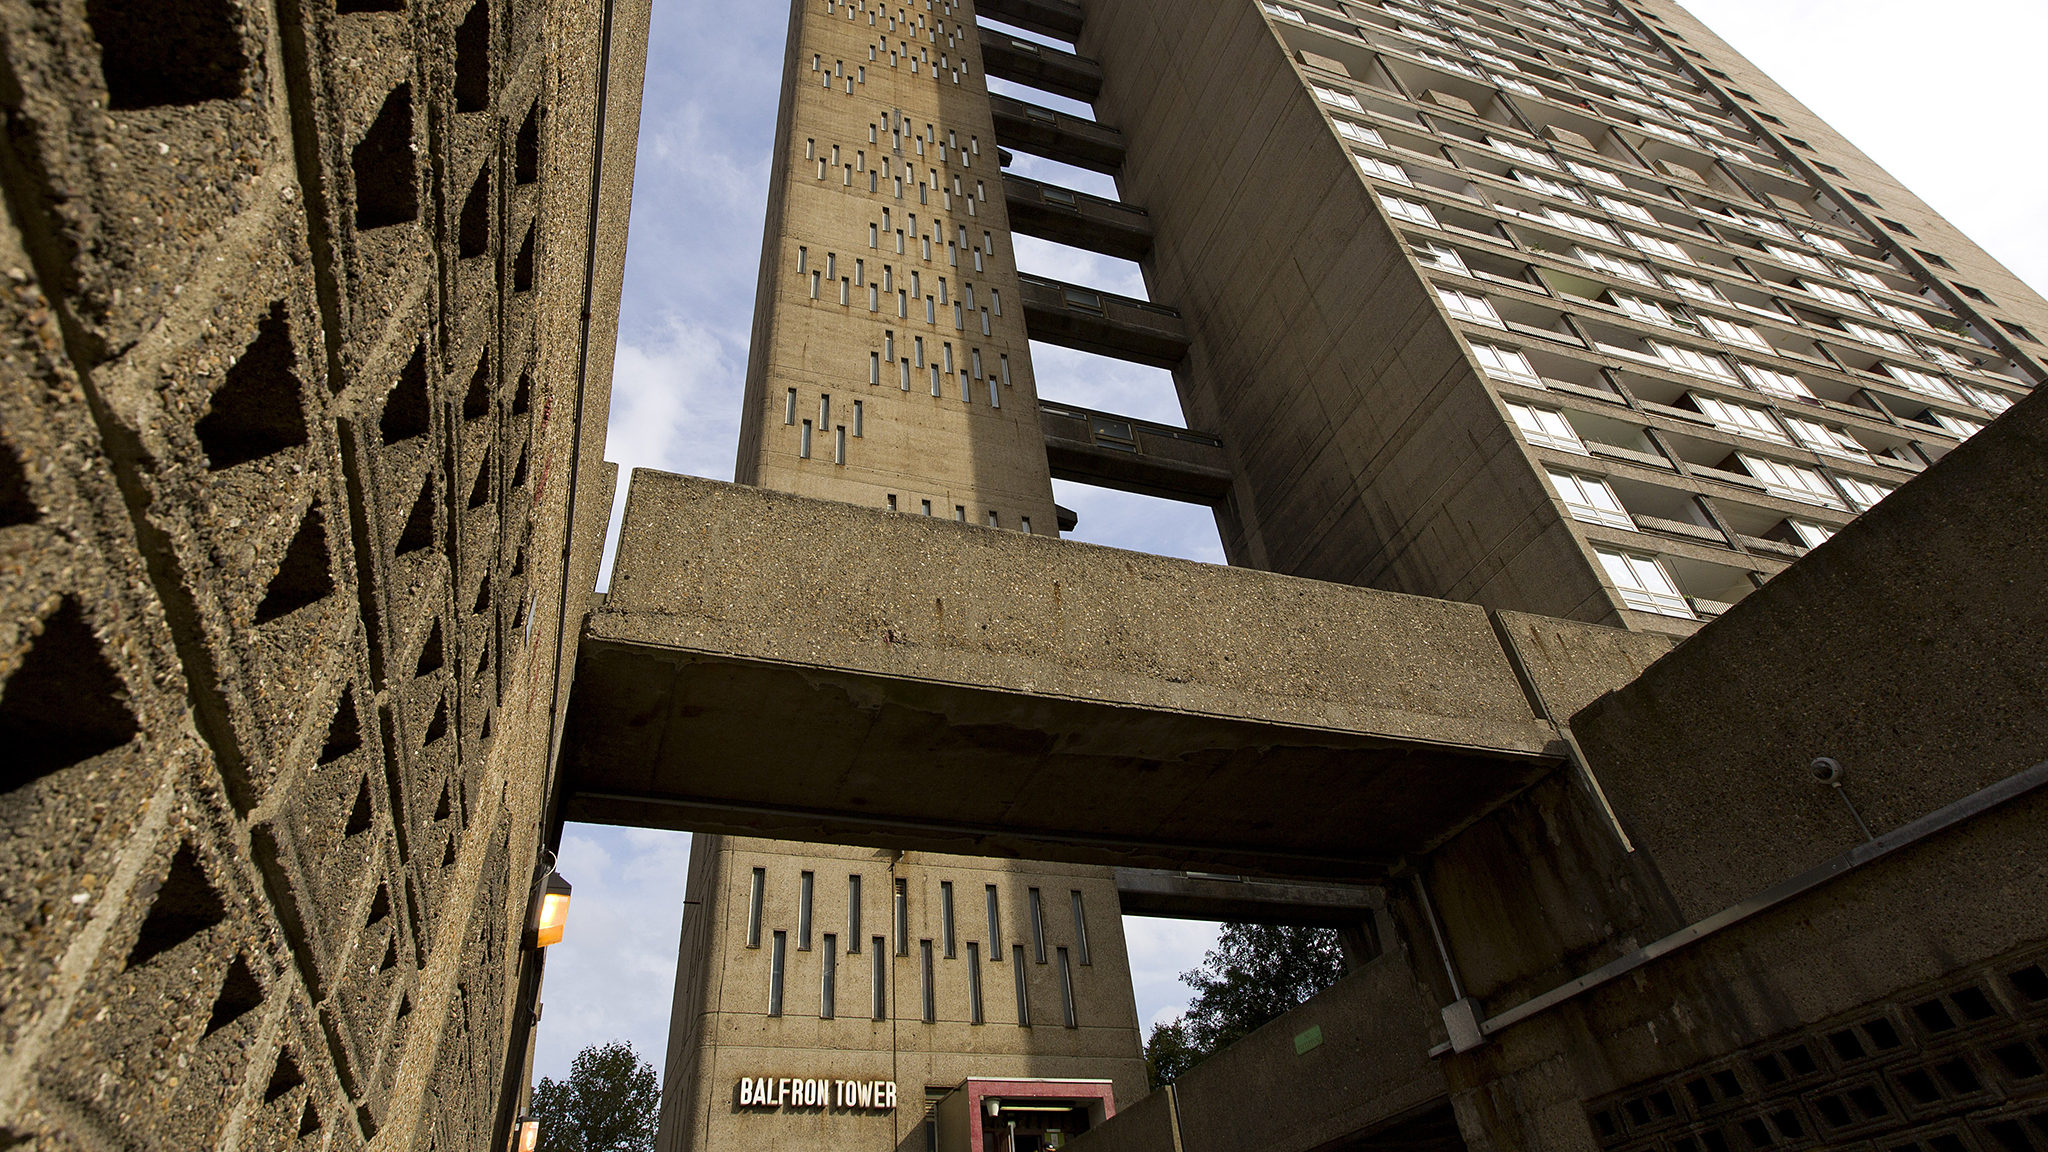 Inside the tower block refurbished for luxury living